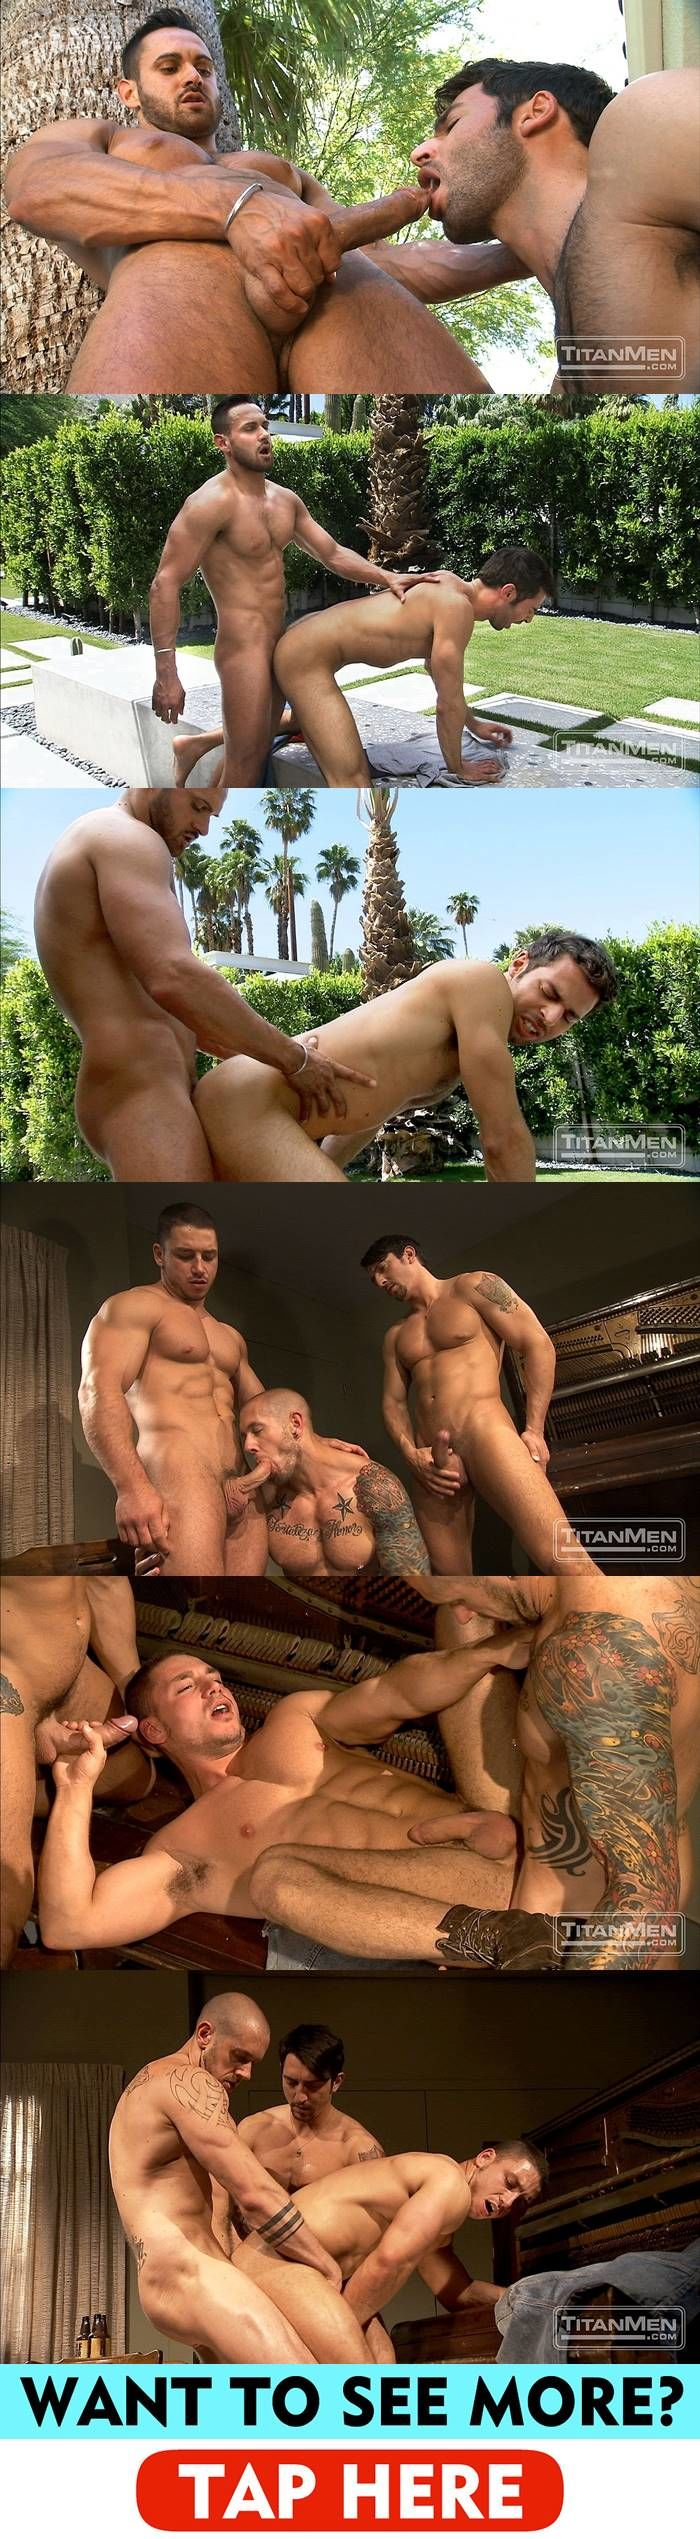 TitanMen Presents: Game On